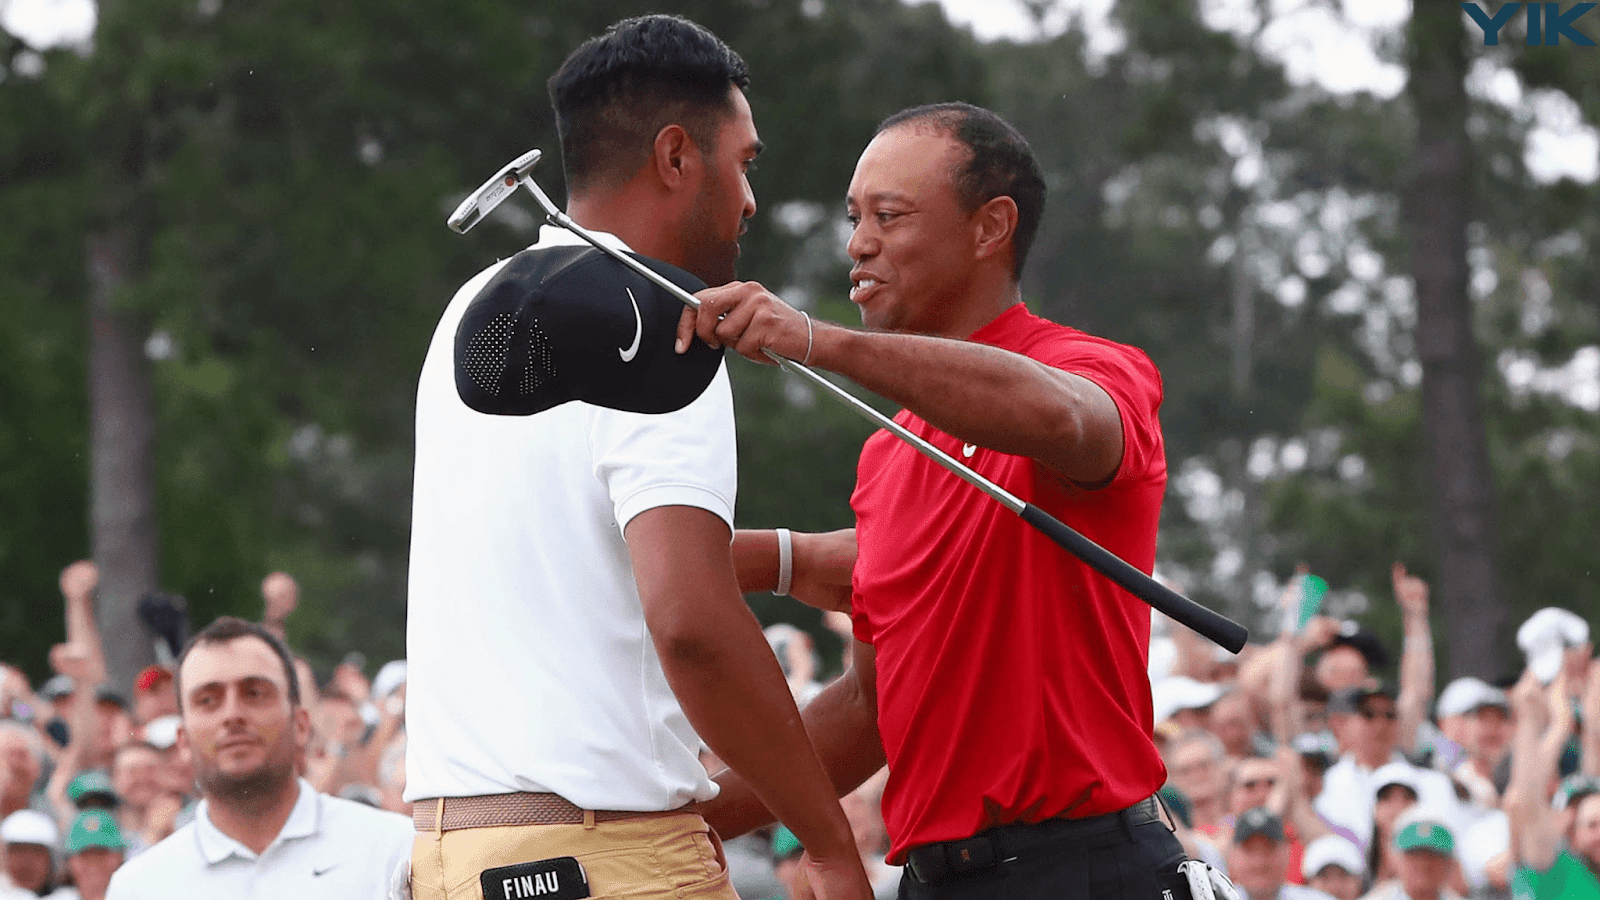 Even his opponents watched in wonder as Tiger Woods won at Augusta